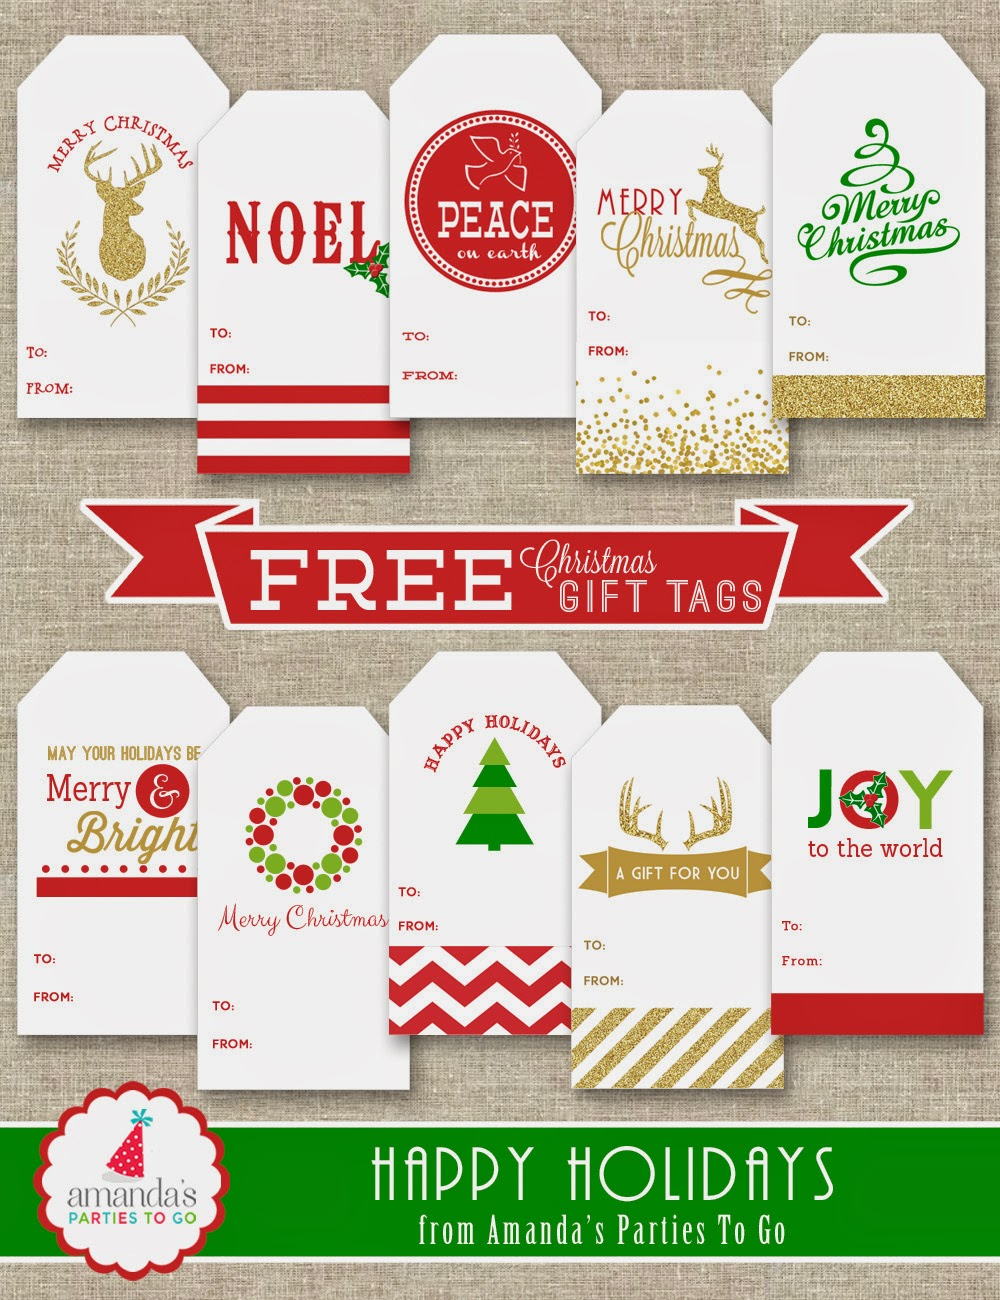 Amandas parties to go free christmas gift tag printables monday december 8 negle Gallery